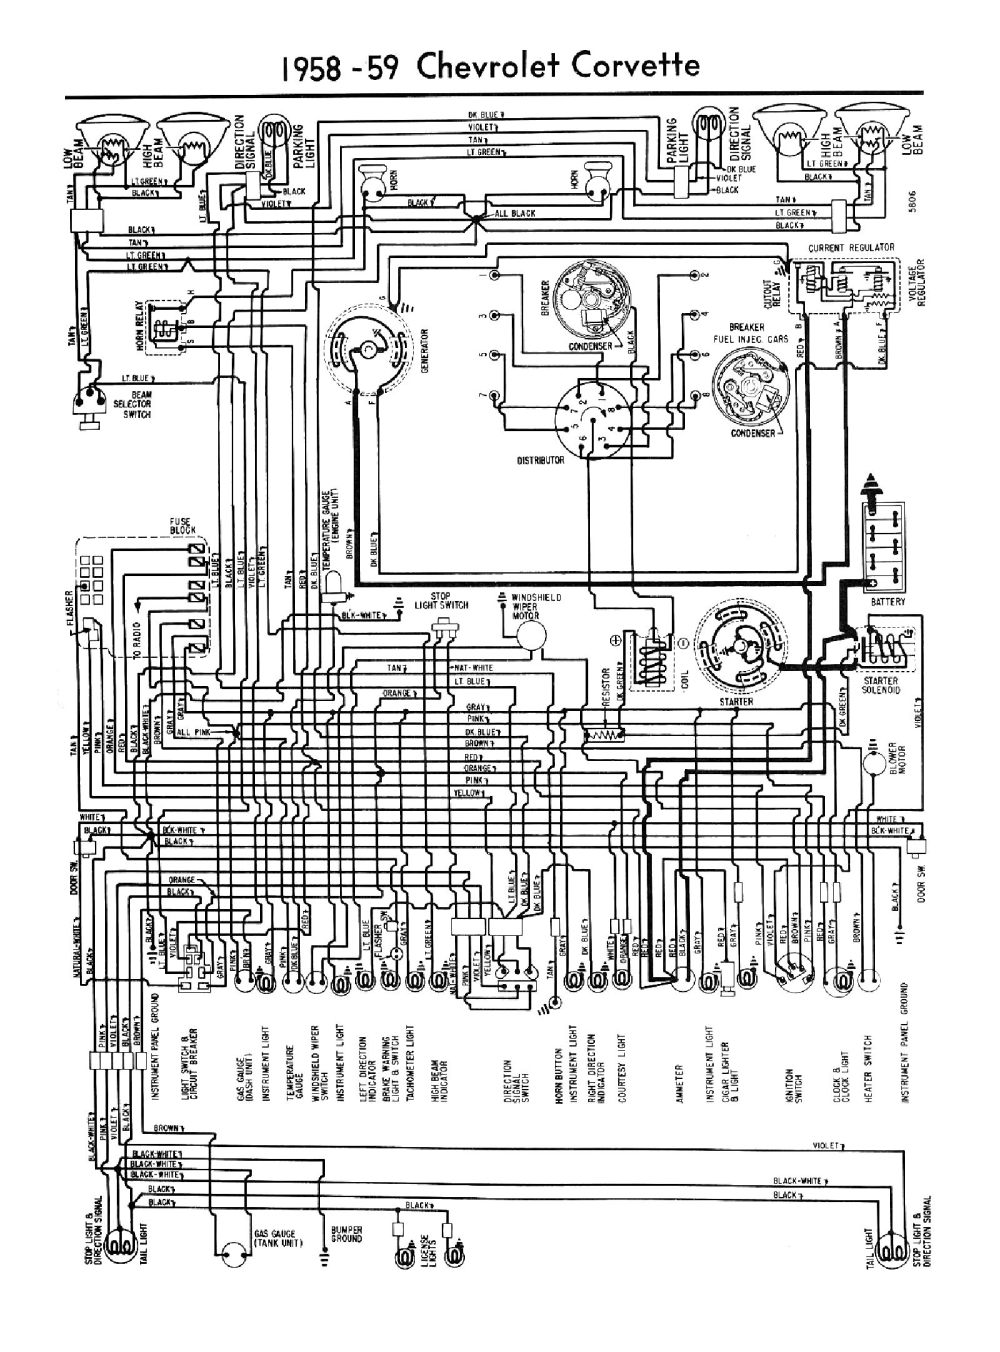 medium resolution of 1958 oldsmobile wiring diagram wiring library basic electrical wiring diagrams 1958 corvette wiring diagram